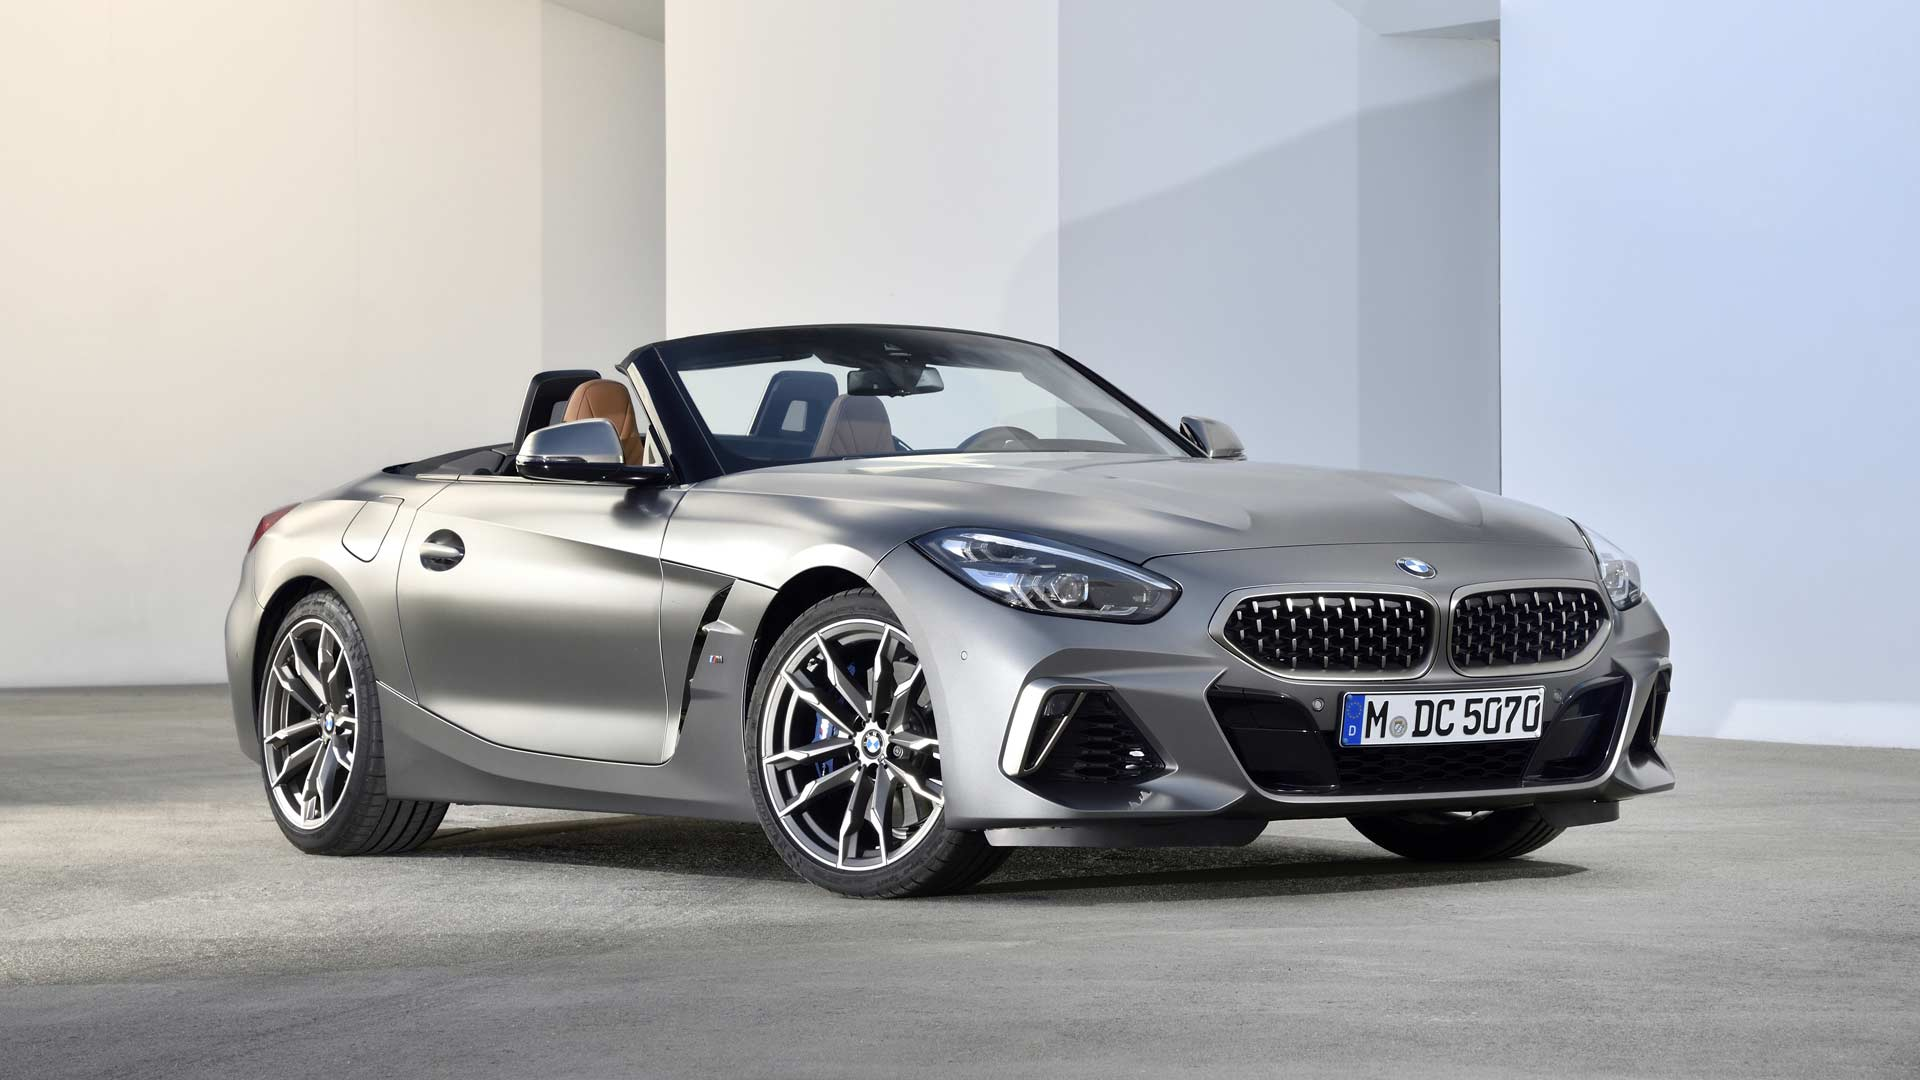 New Bmw Z4 Launched In India At Rs 64 90 Lakh Autodevot